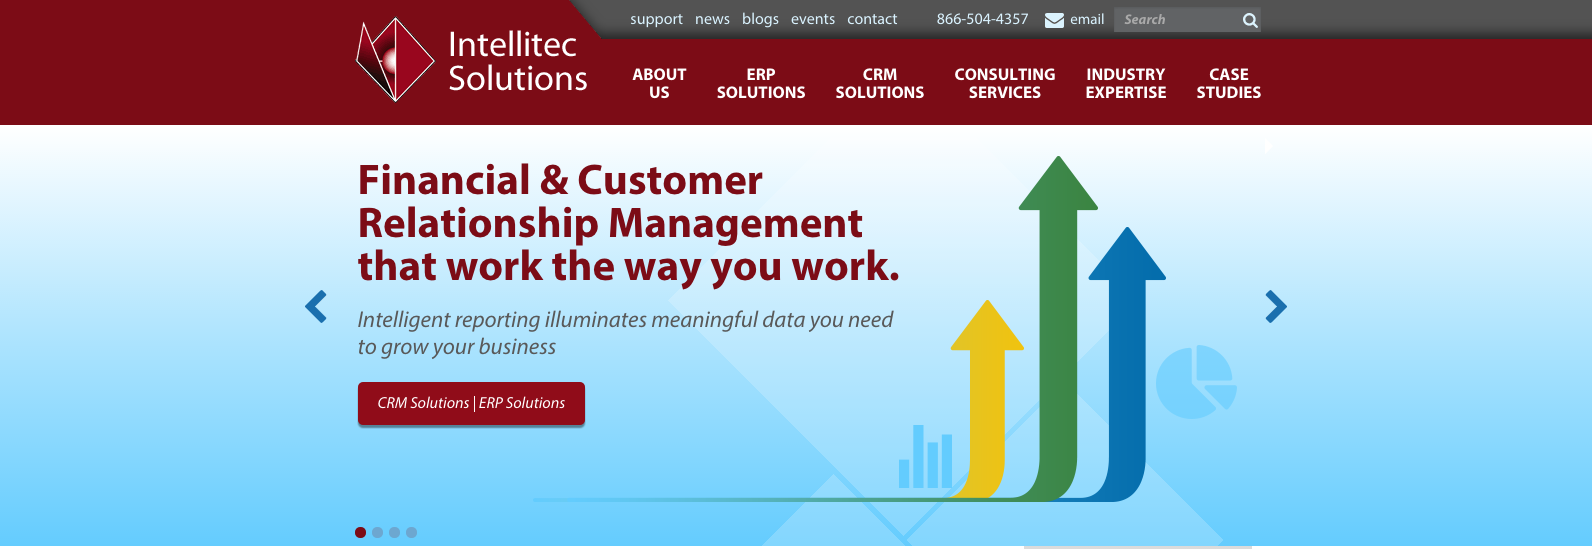 Intellitec_Solutions_Headline.png